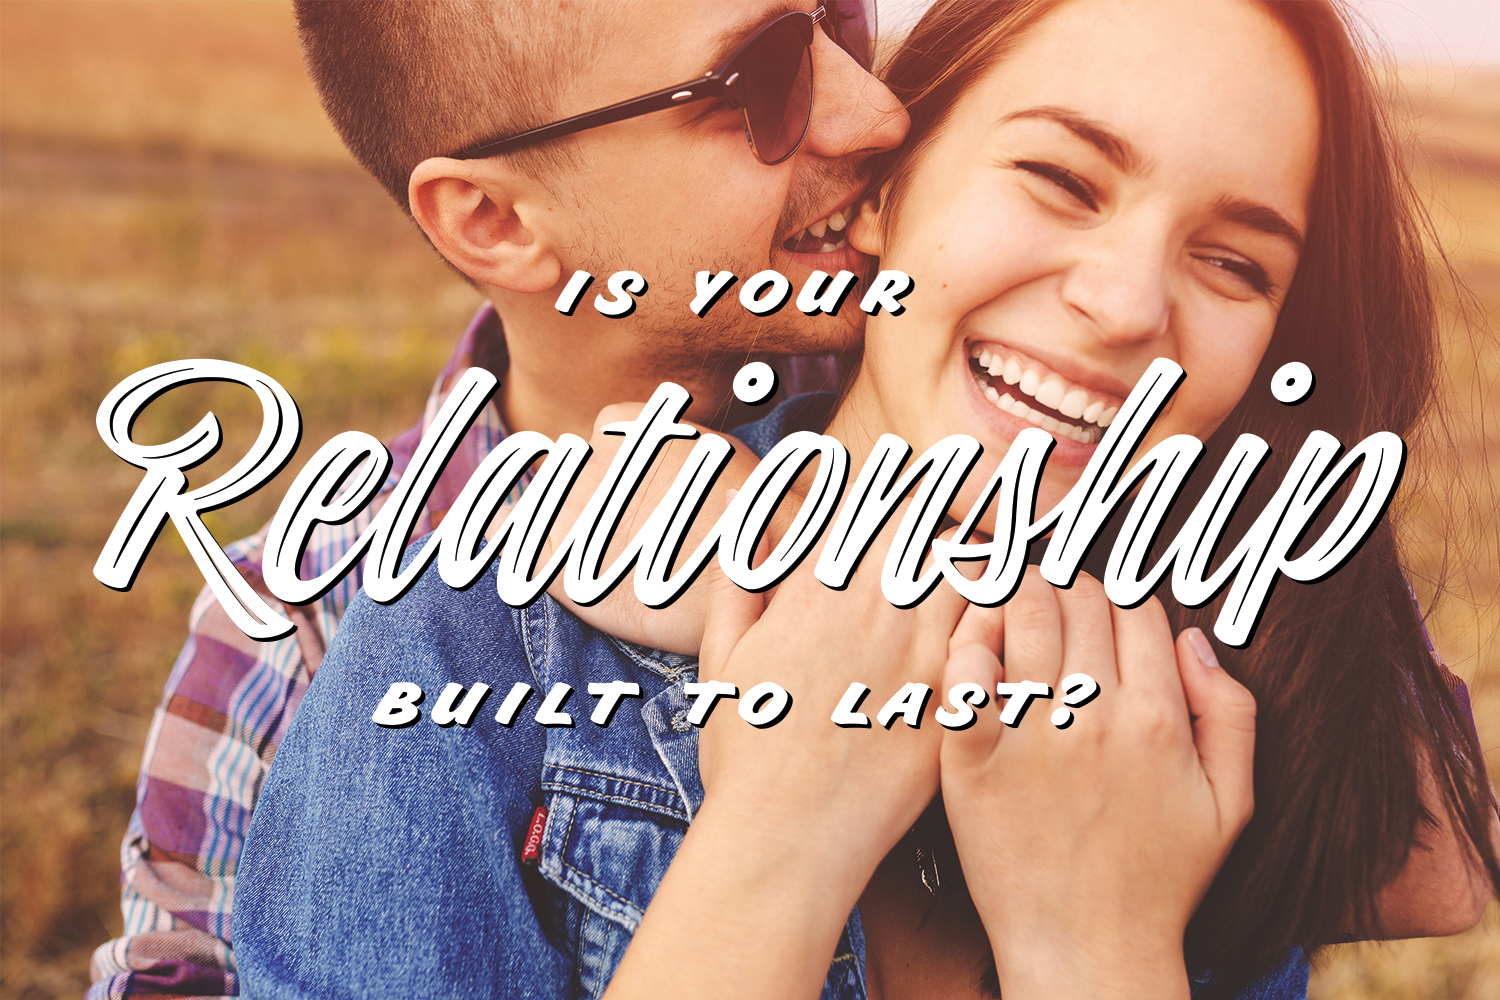 teenage love problems relationships com 9 ways to ensure your relationship is built to last